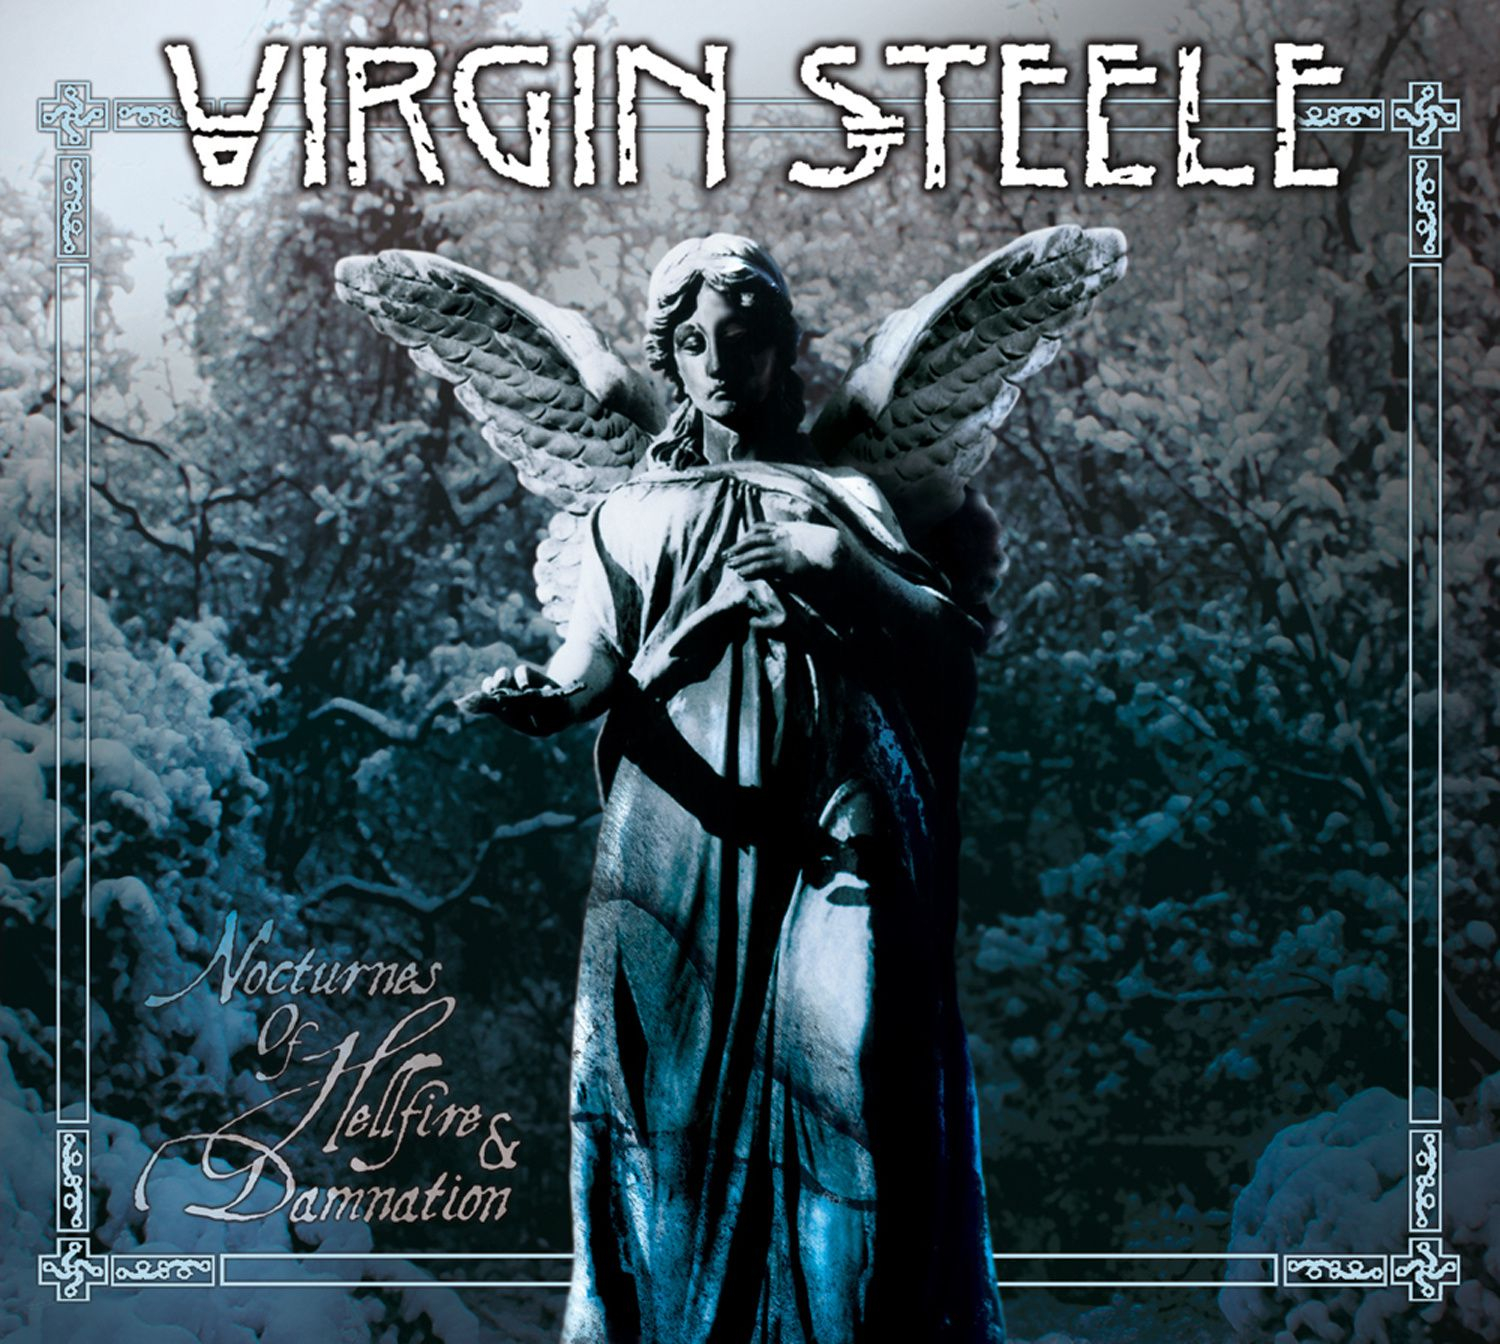 """CD review VIRGIN STEELE """"Nocturnes of hellfire & damnation"""""""